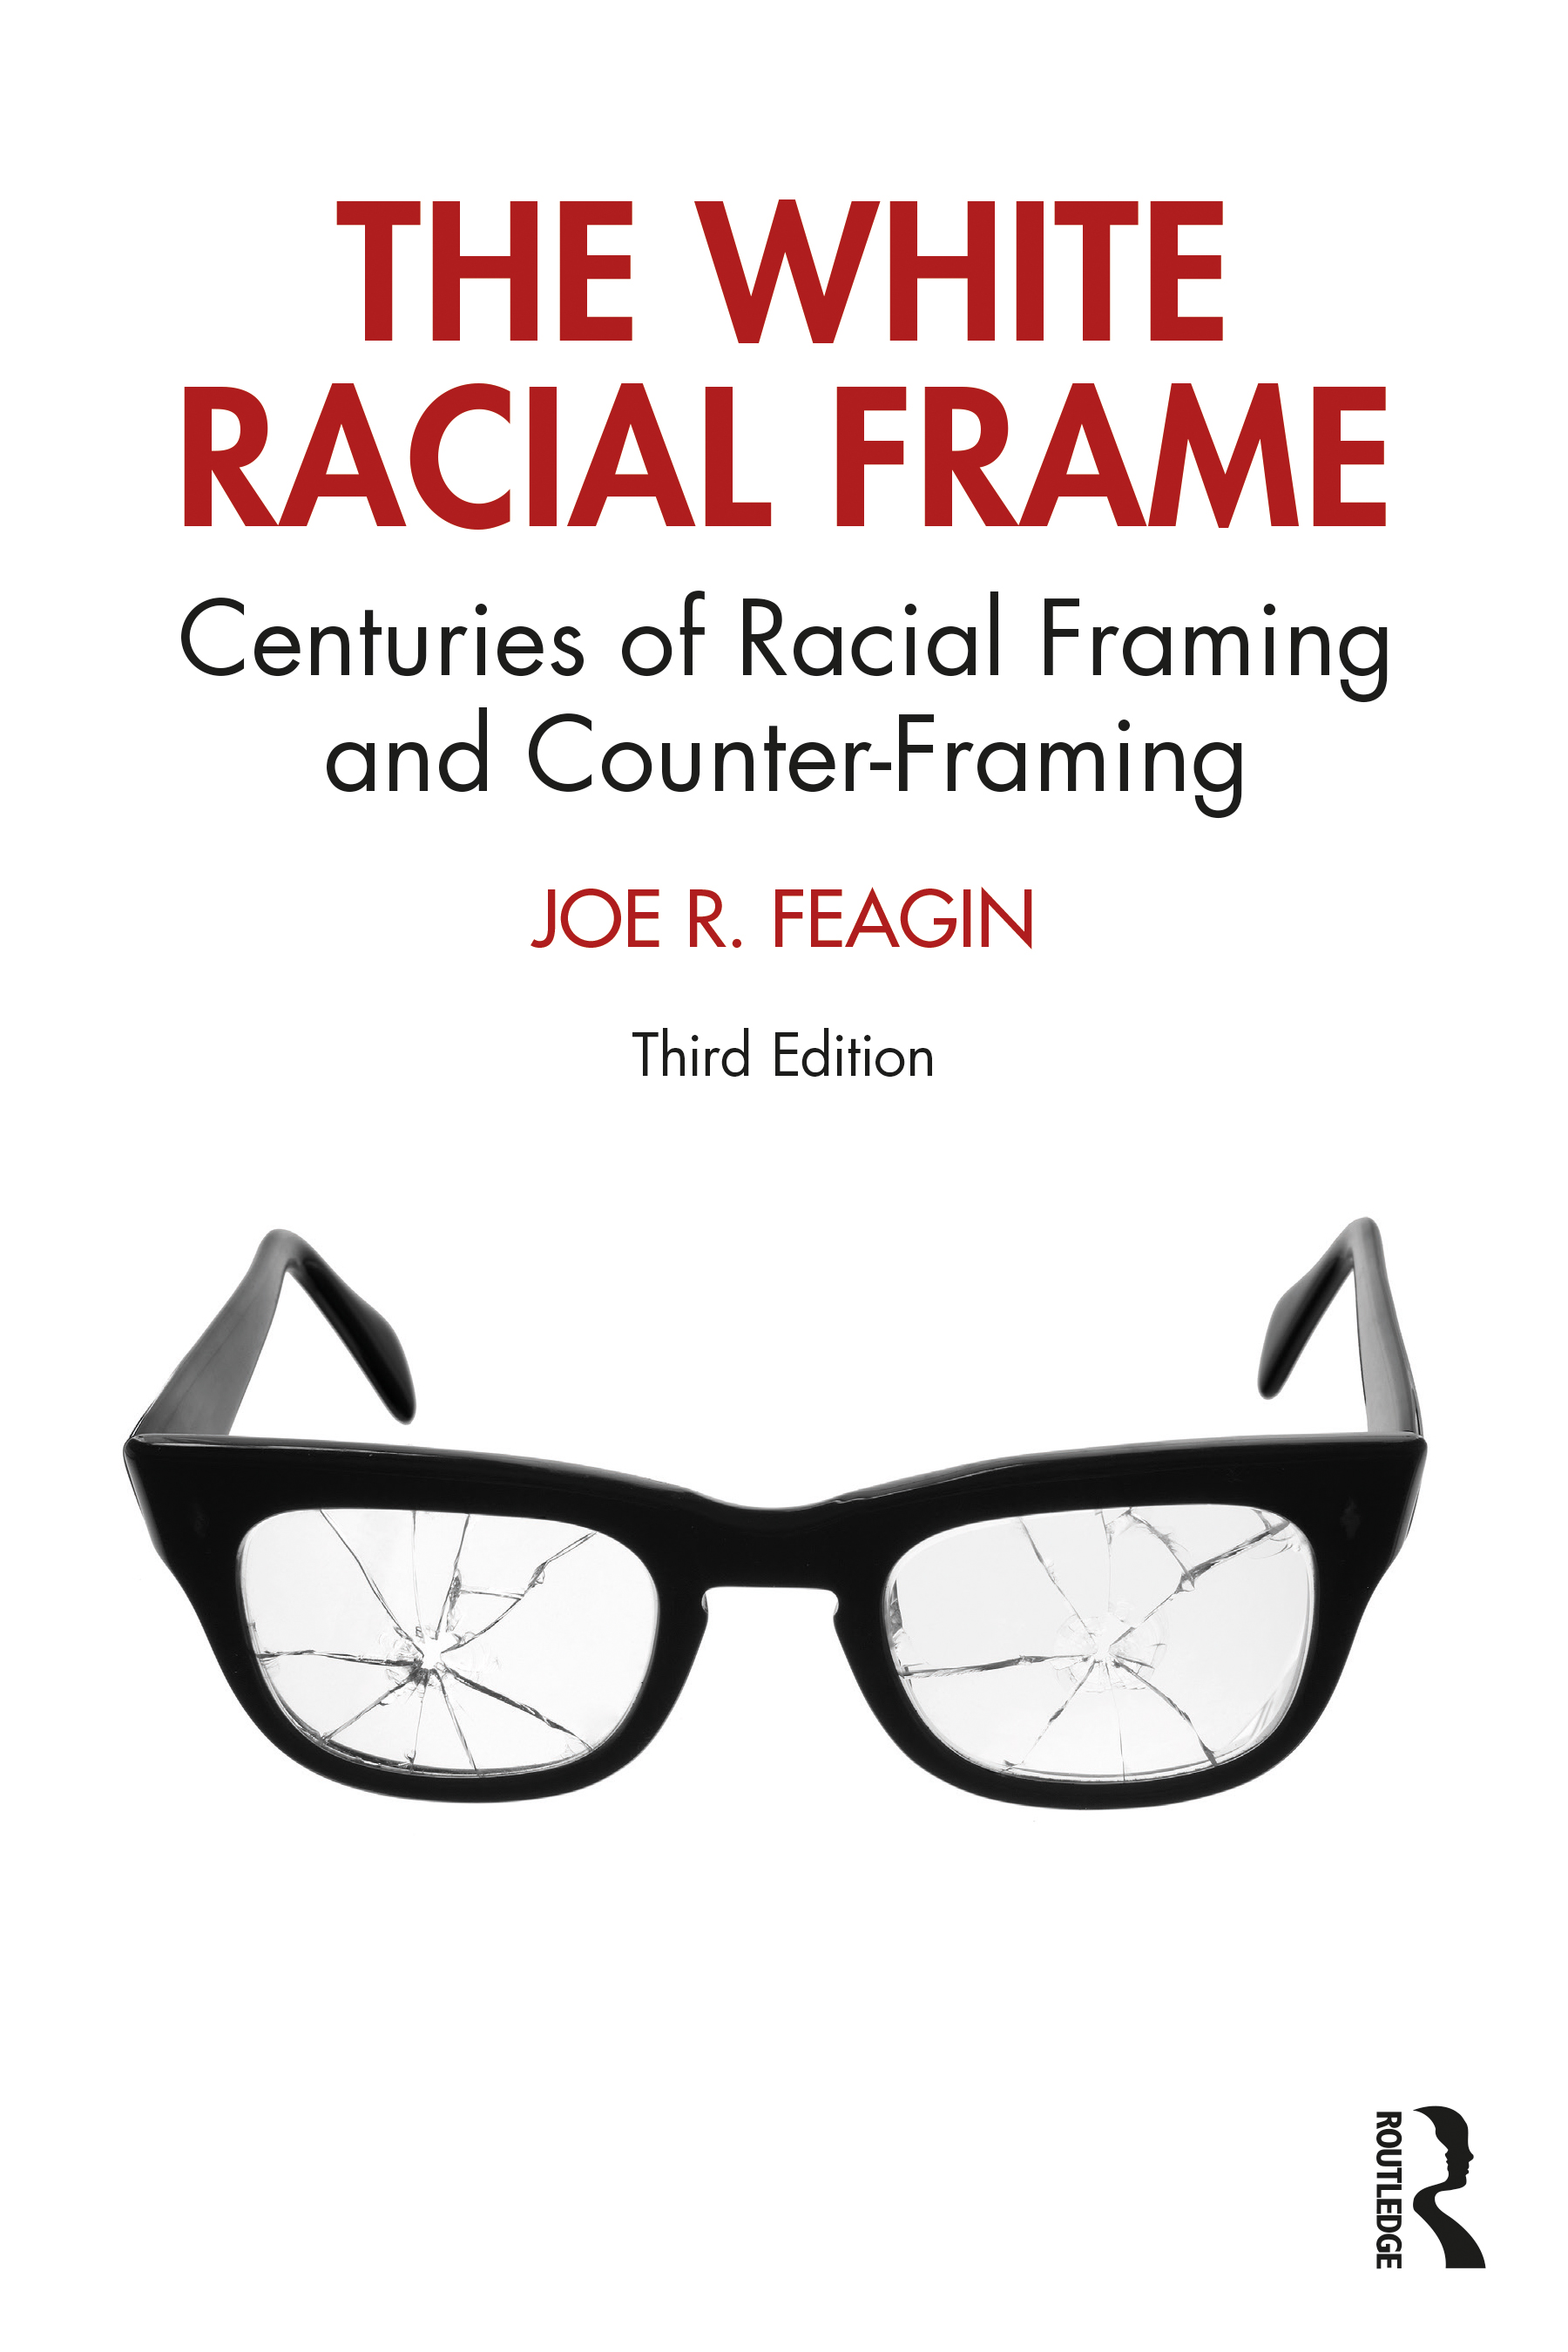 The White Racial Frame: Centuries of Racial Framing and Counter-Framing, 3rd Edition (Paperback) book cover